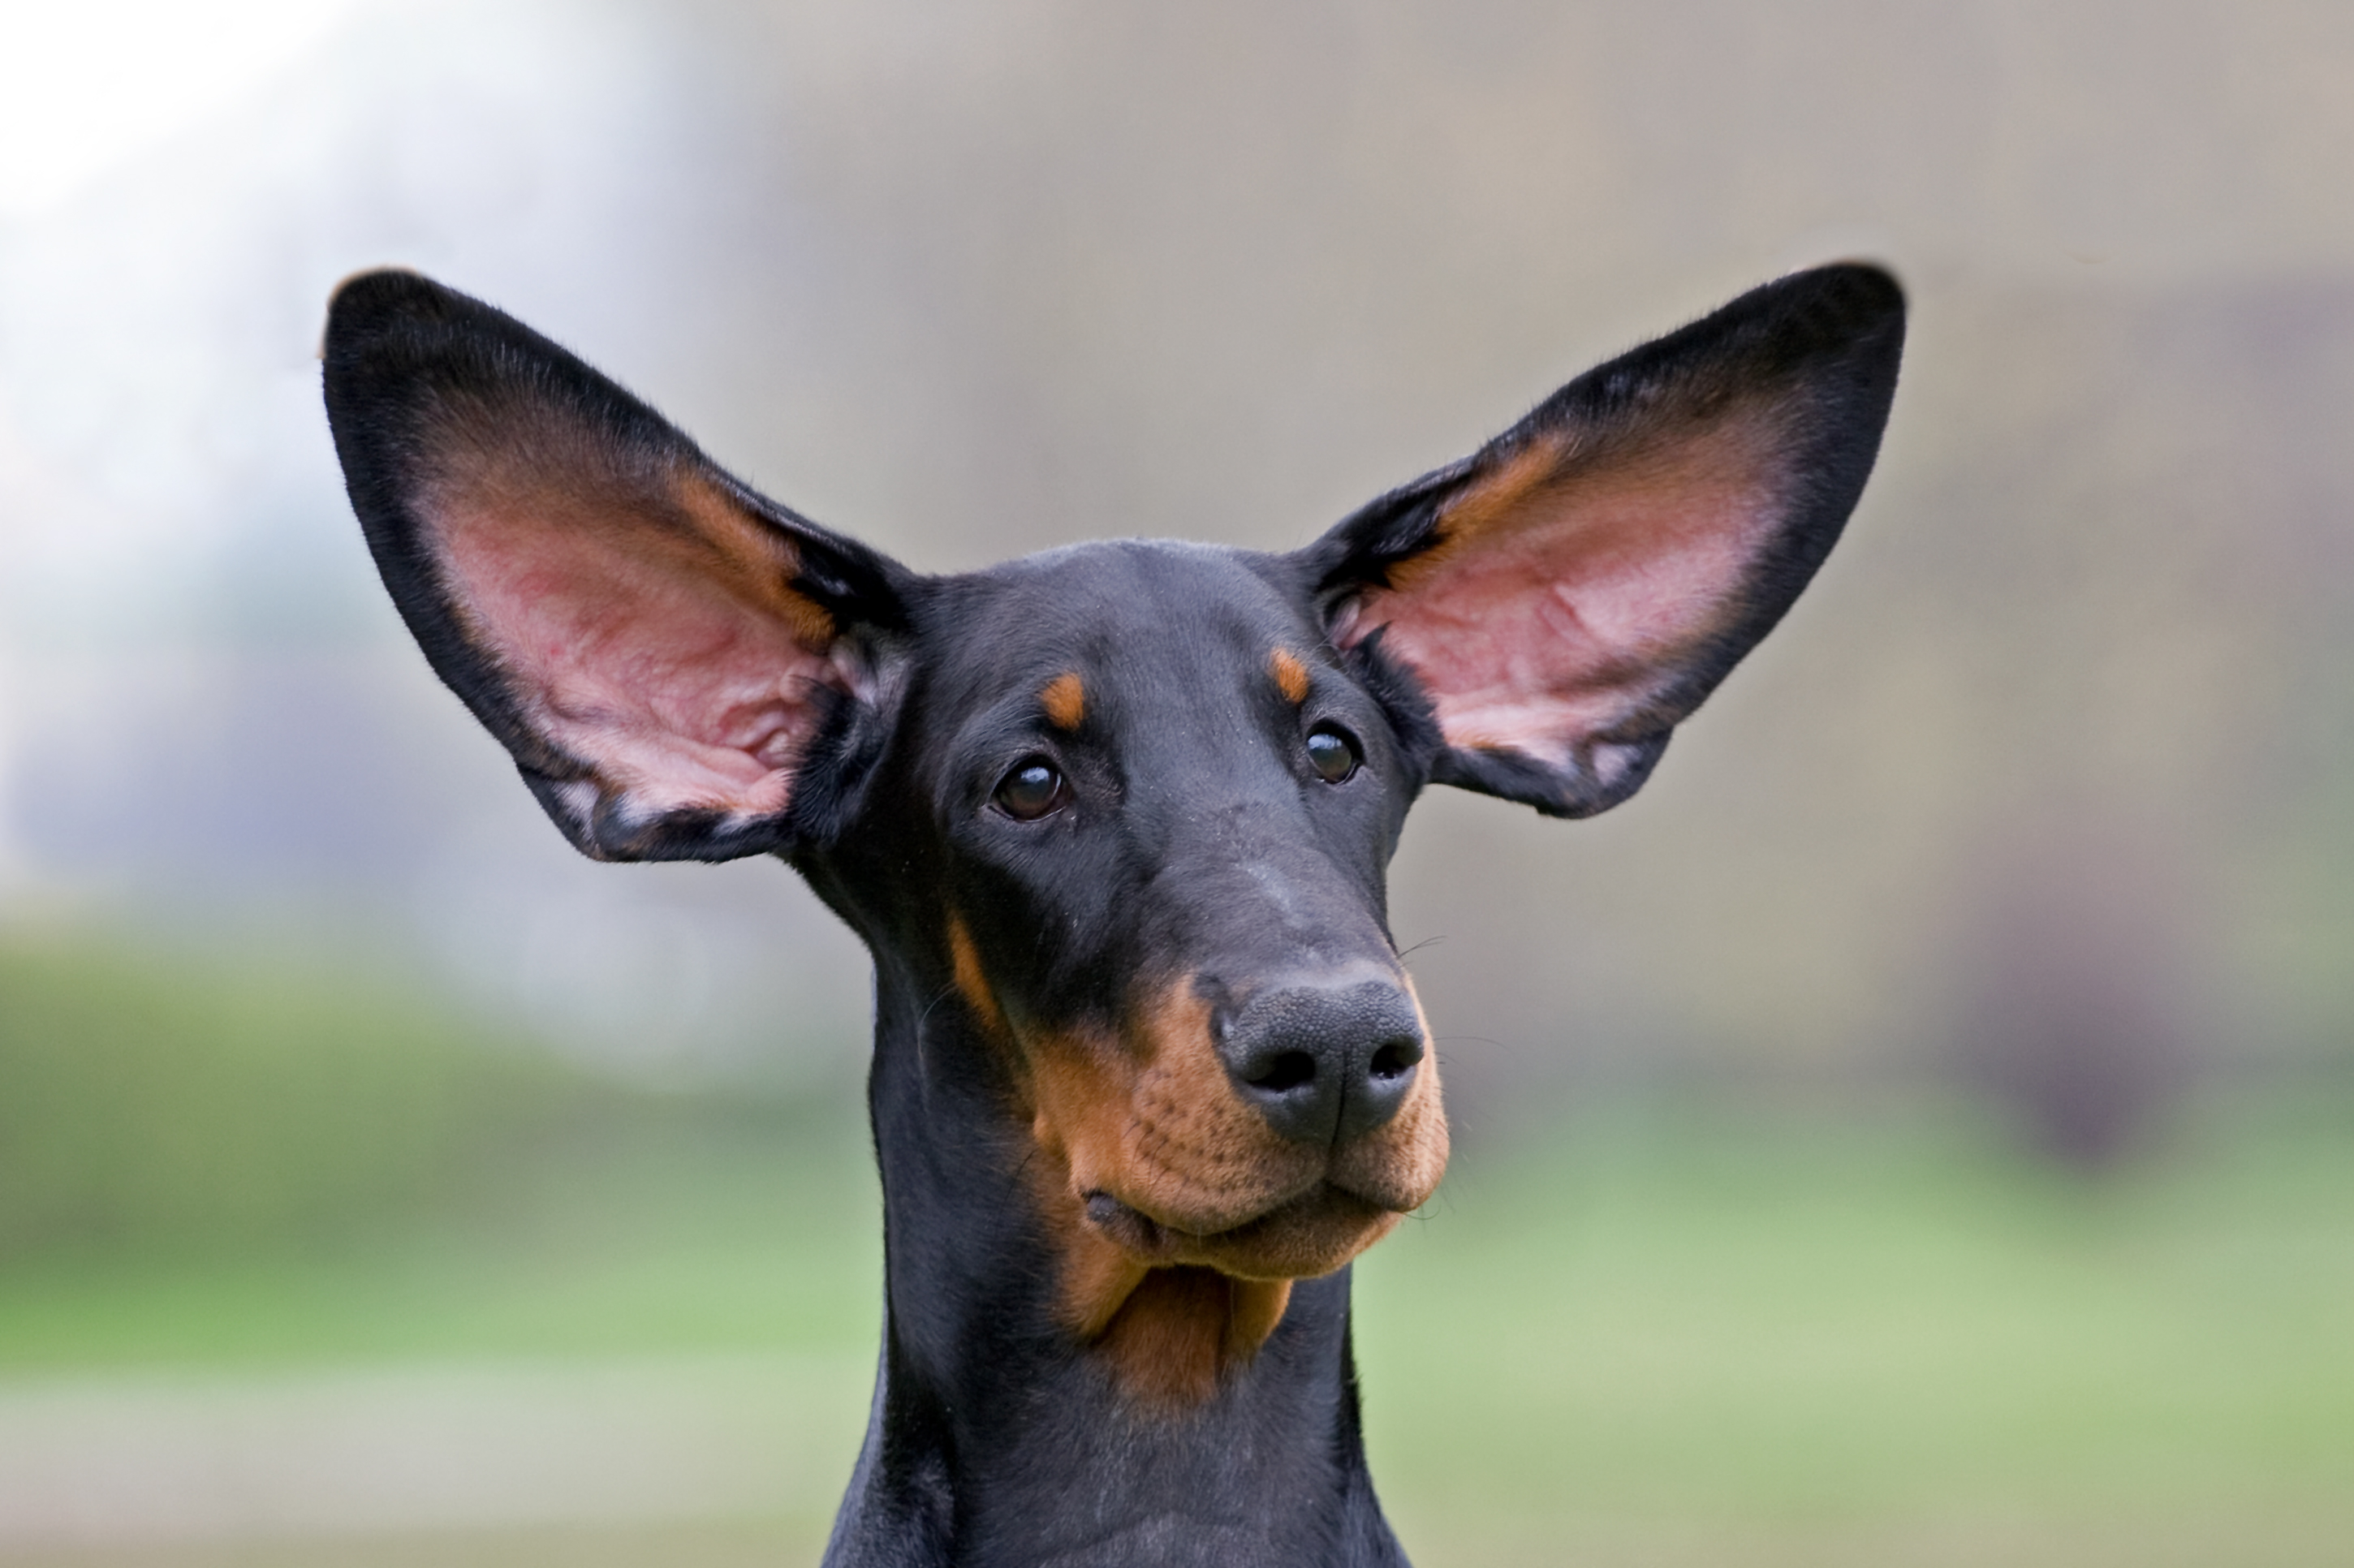 Dobermann puppy portrate, flying ears